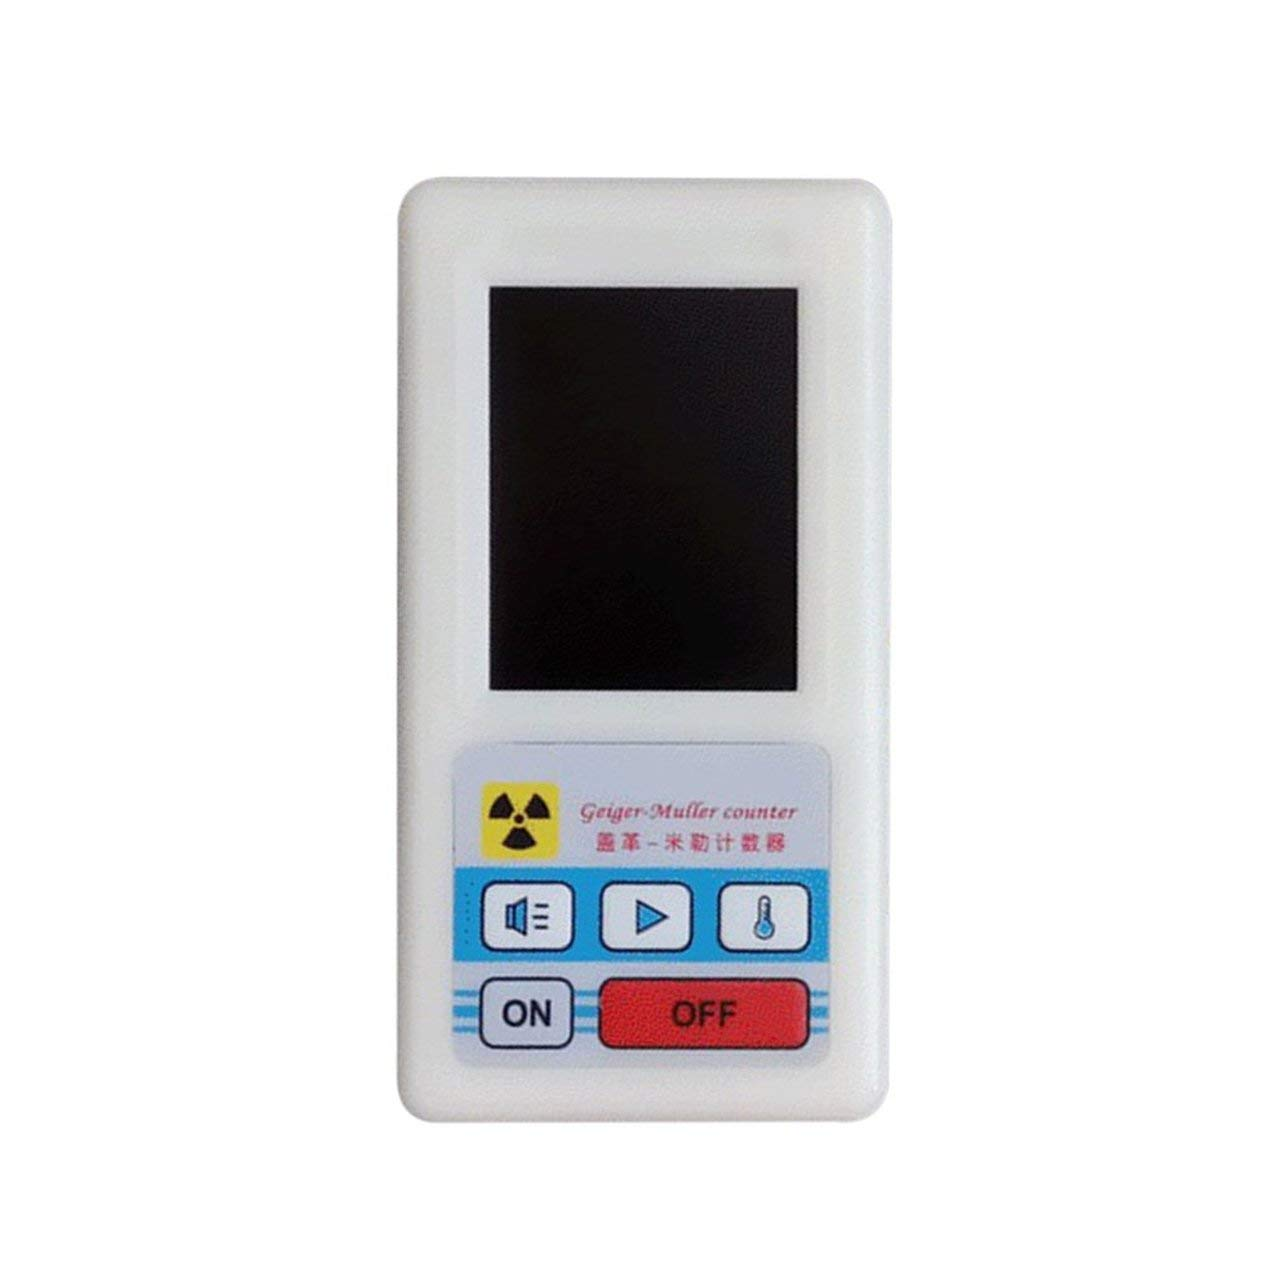 Counter Nuclear Radiation Detector Display Screen Dosimeter Geiger Counters(Color:White) WOSOSYEYO